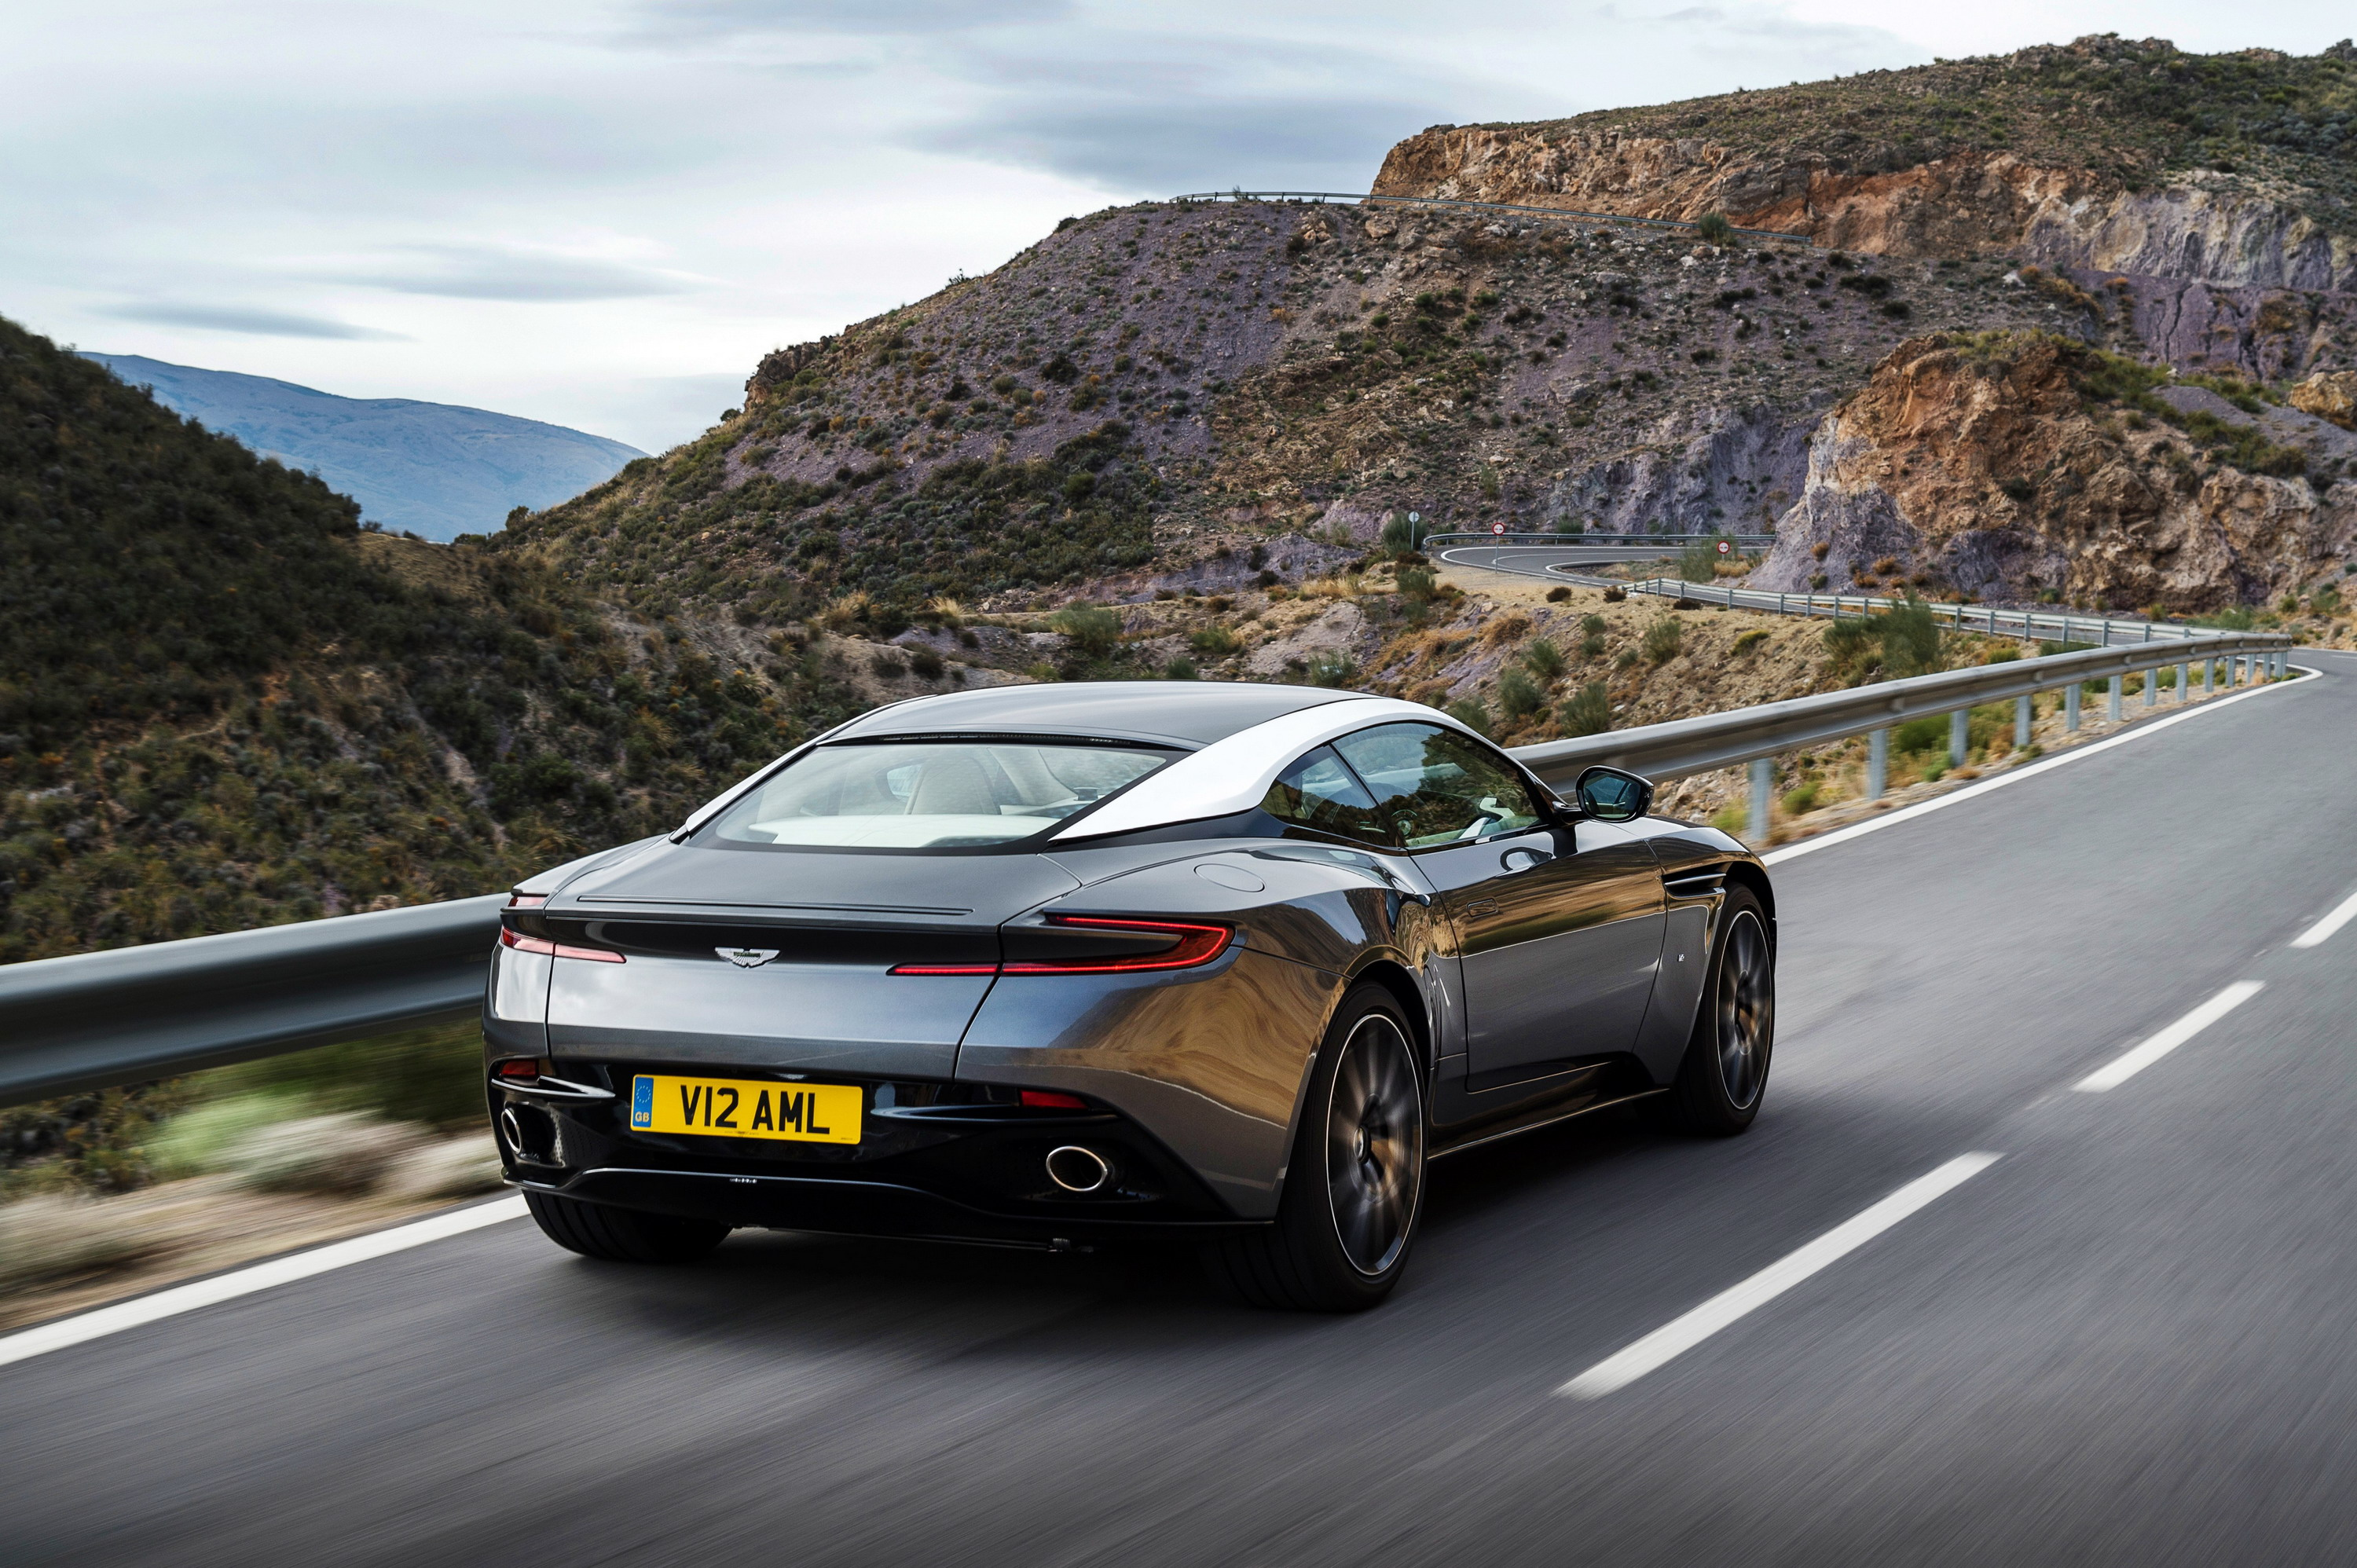 parison 2019 Aston Martin DBS Superleggera Vs Aston Martin DB11